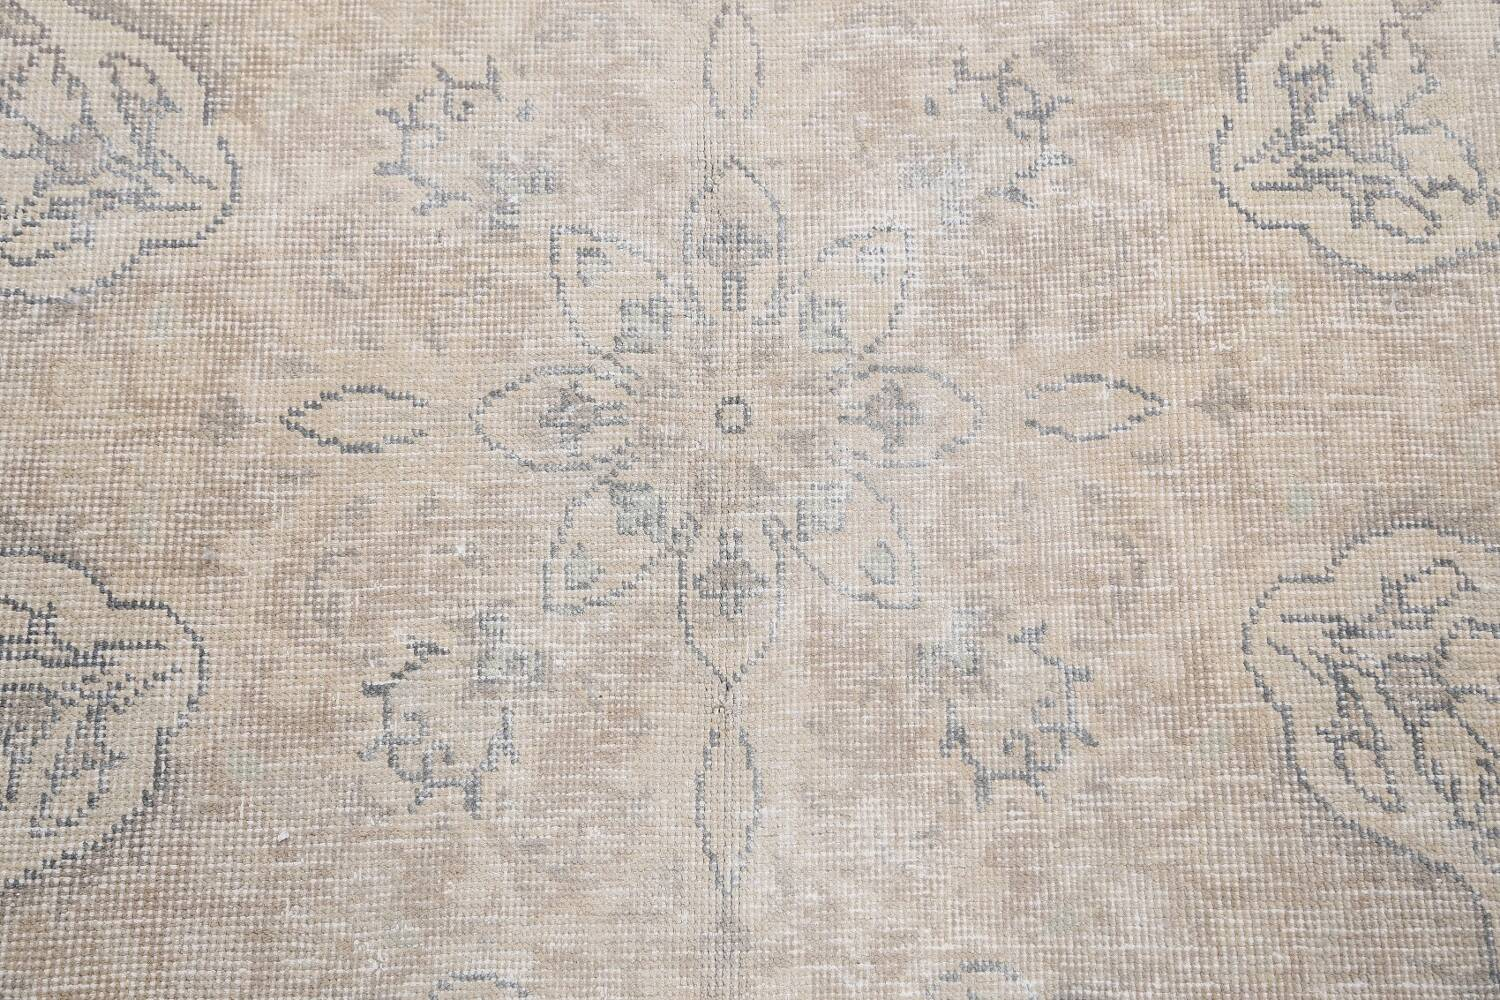 Muted Distressed Floral Tabriz Persian Area Rug 8x12 image 11